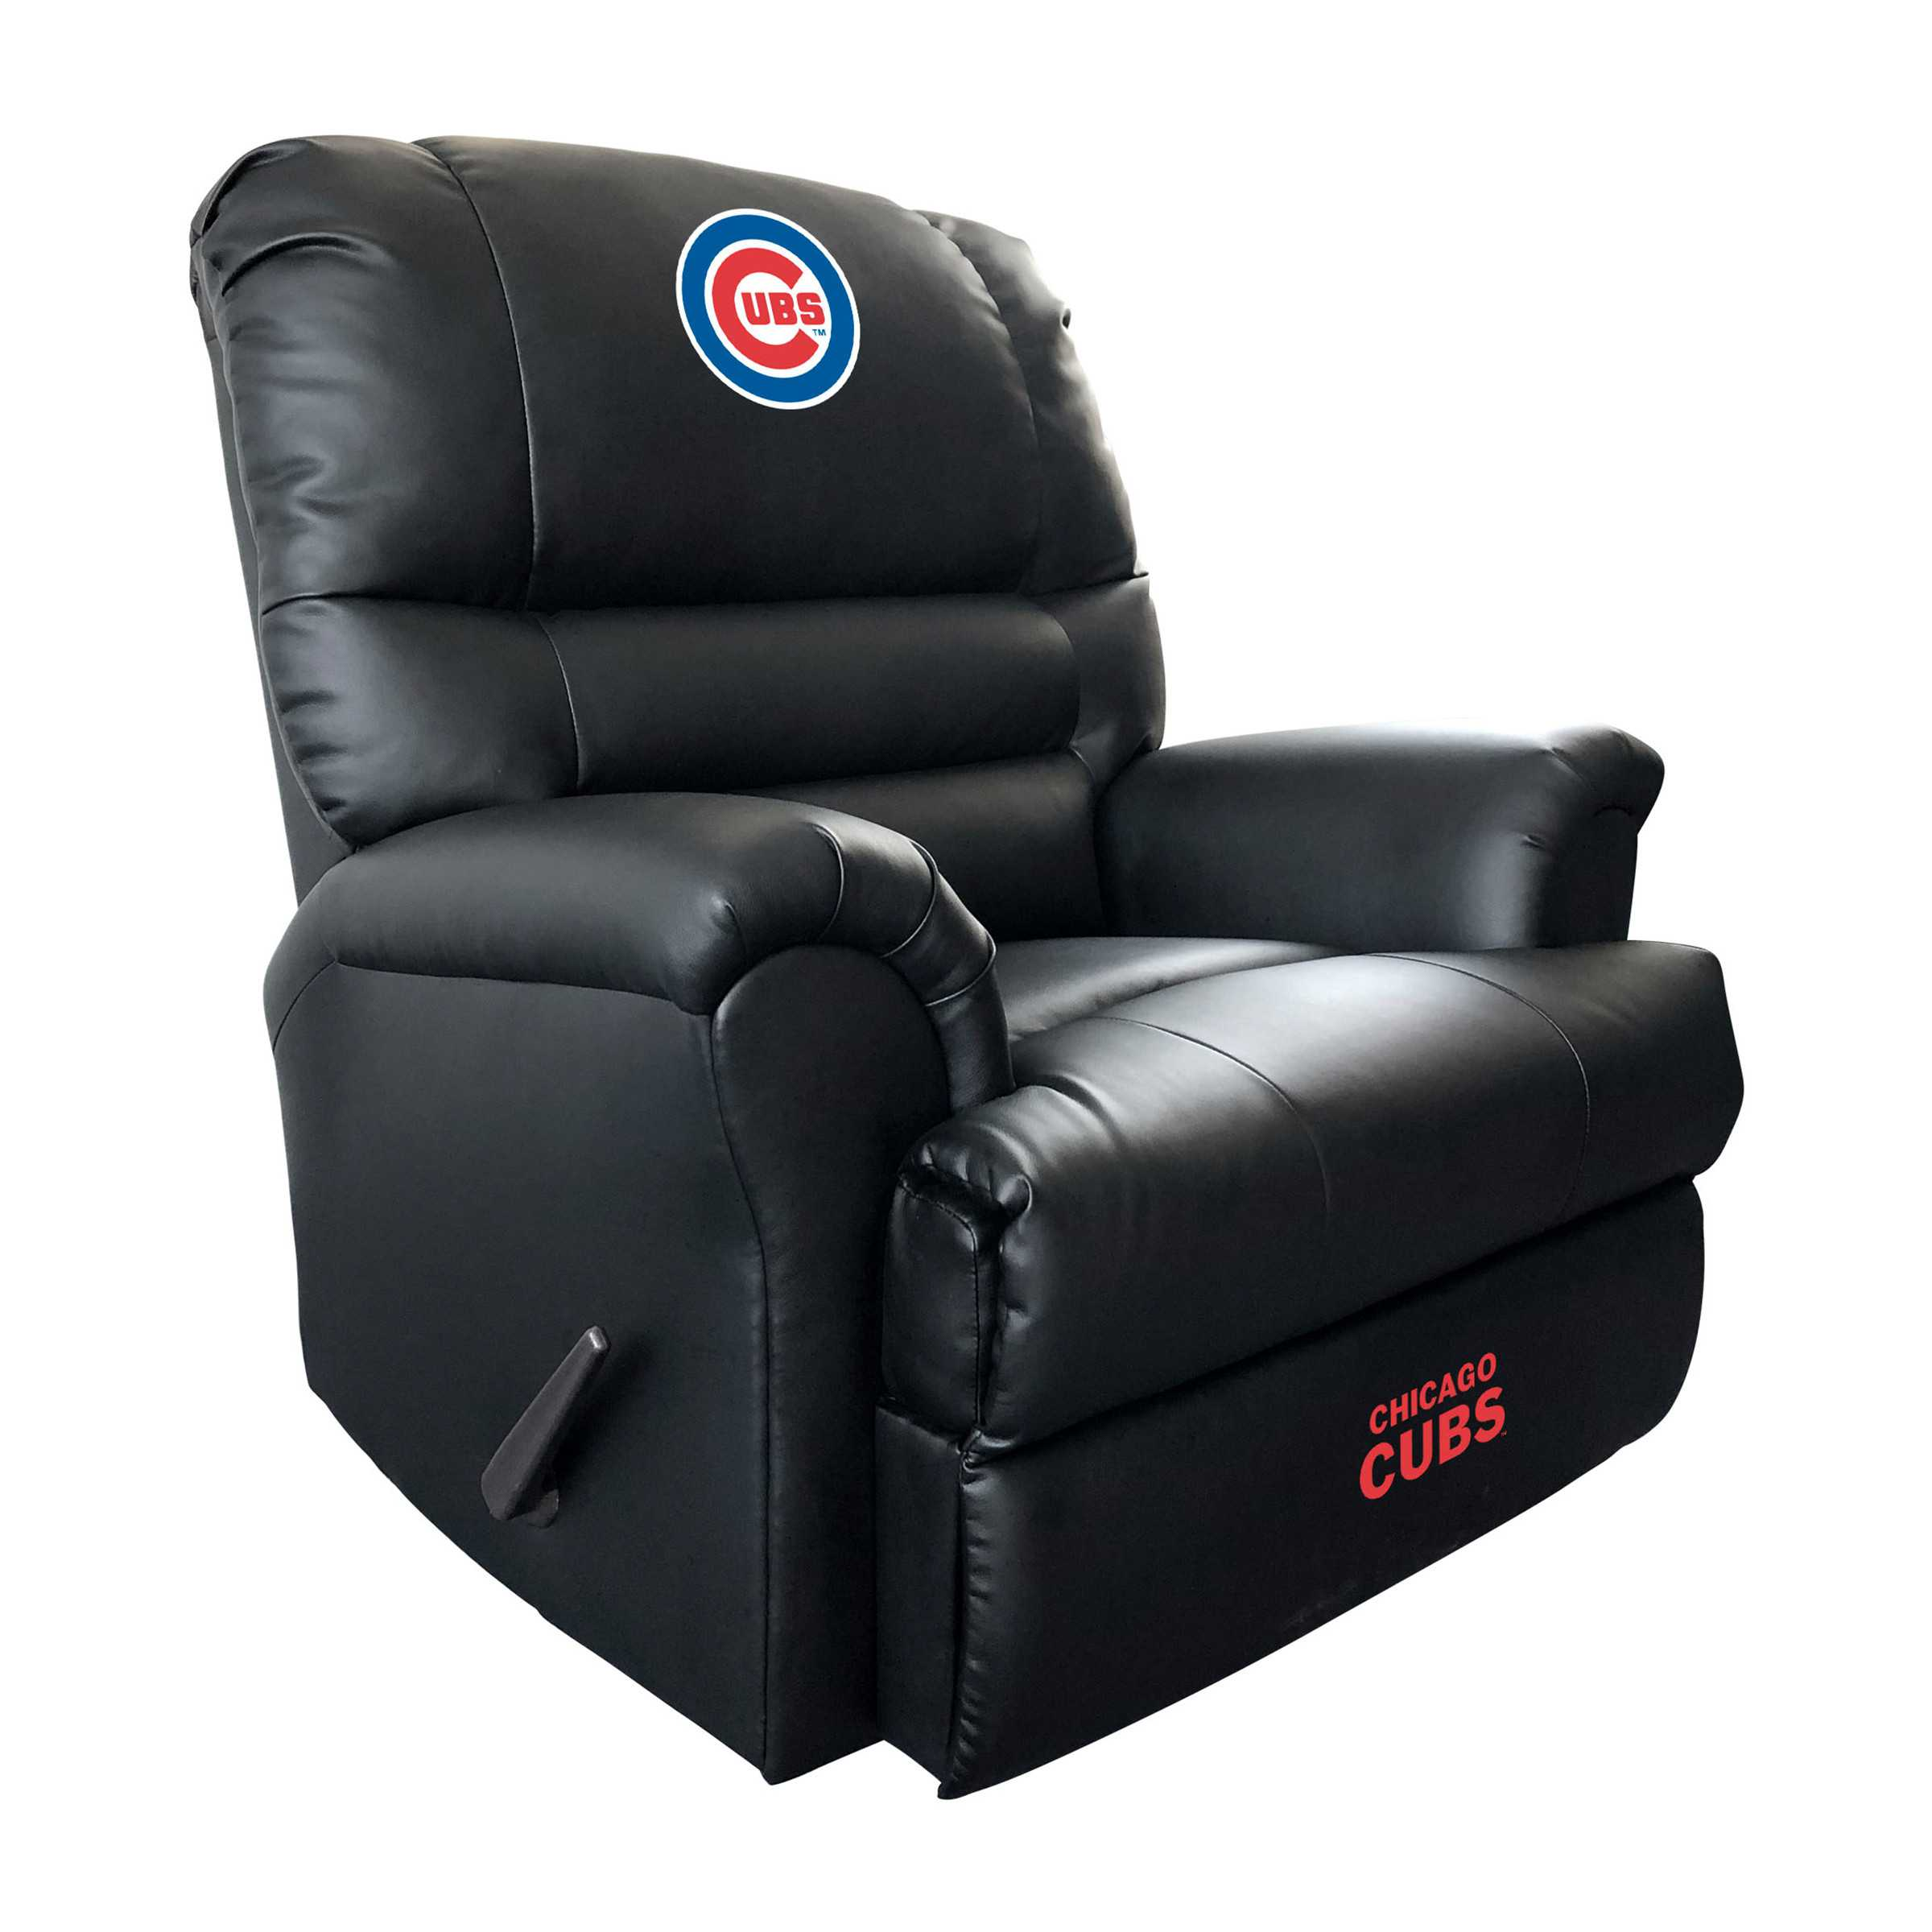 CHICAGO CUBS SPORTS RECLINER